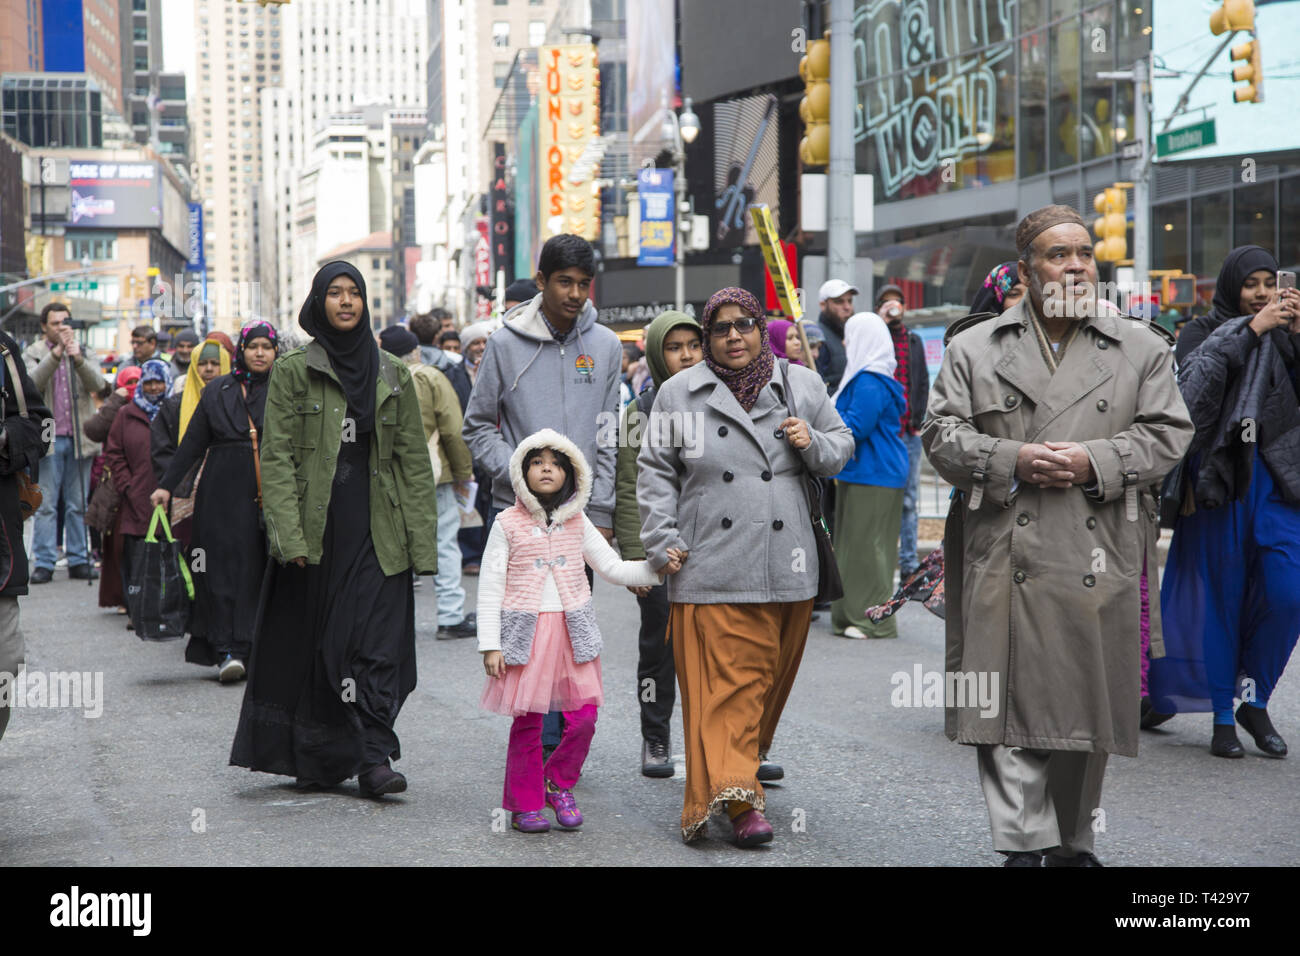 Muslims rally and march in New York City after the New Zealand massacre and for the Palestinians in Gaza as well as against Islamophobia in general. - Stock Image